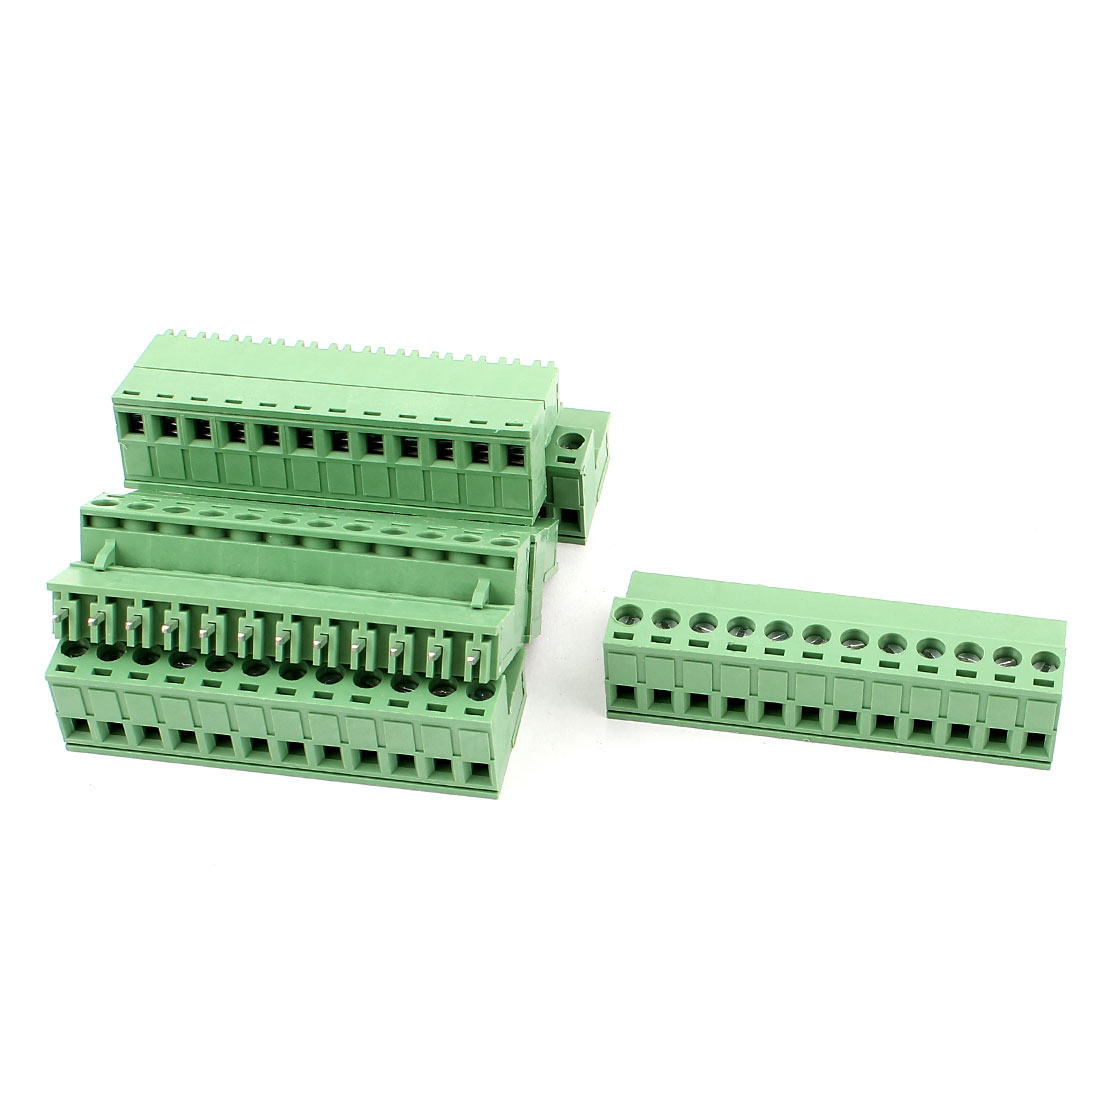 6 Pcs AC 300V 10A 12P PCB Terminal Block Connector 5.08mm Pitch Green